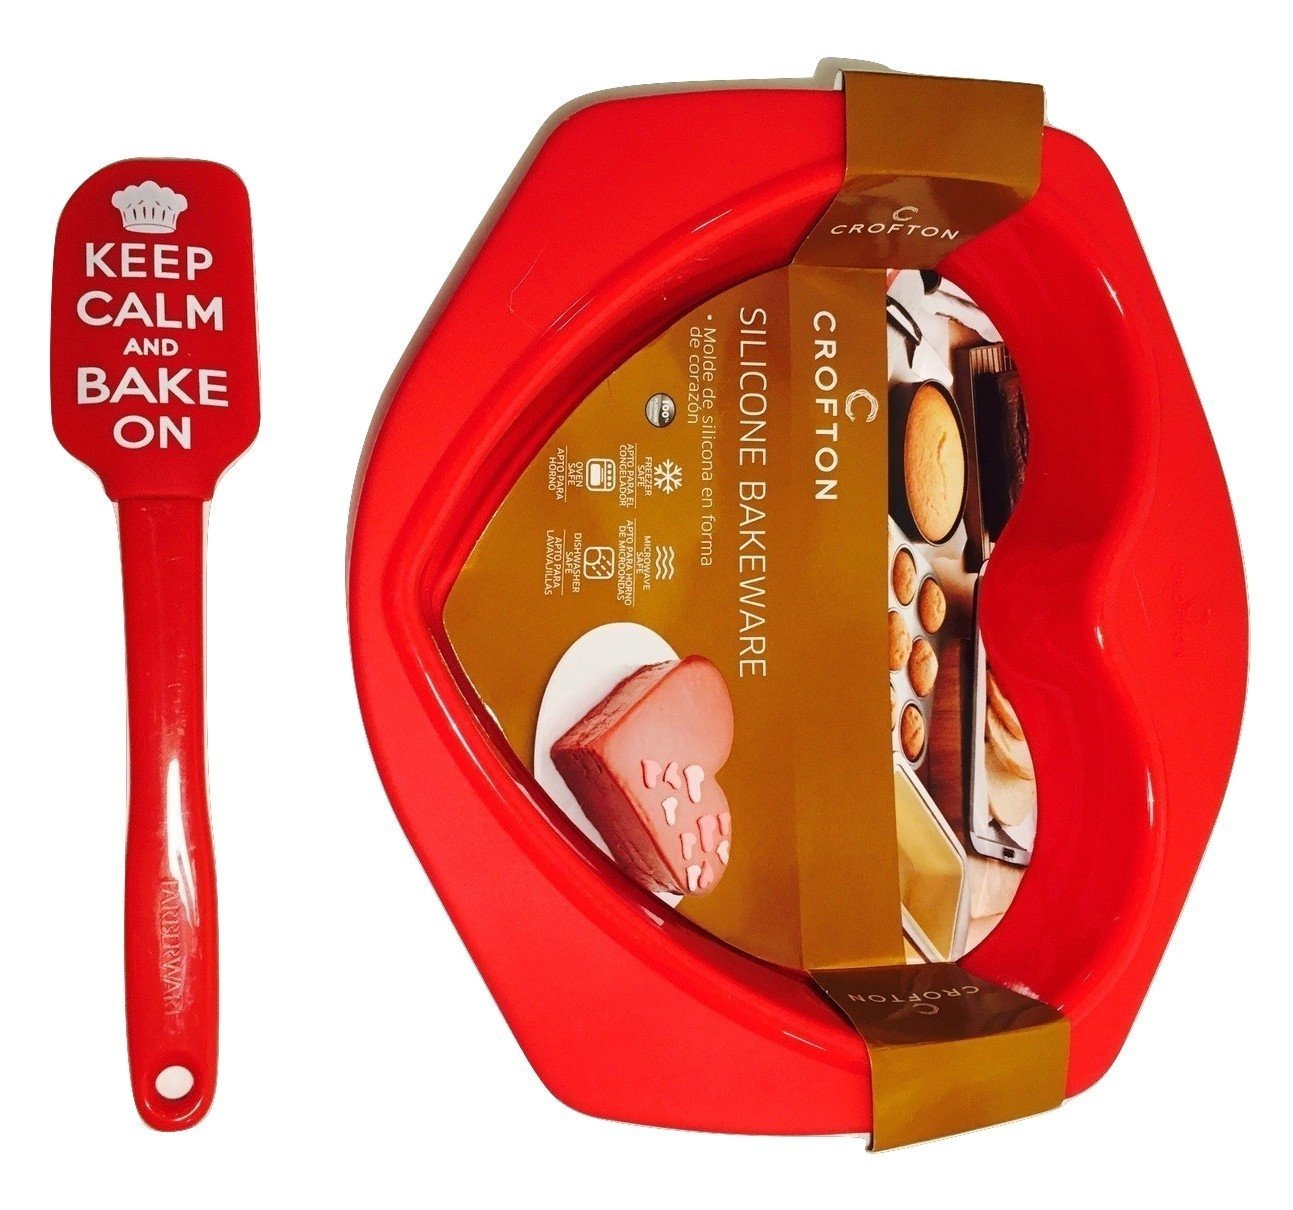 Amazon.com: Novelty Heart-shaped Red Silicone Baking Pan & Spatula That Says